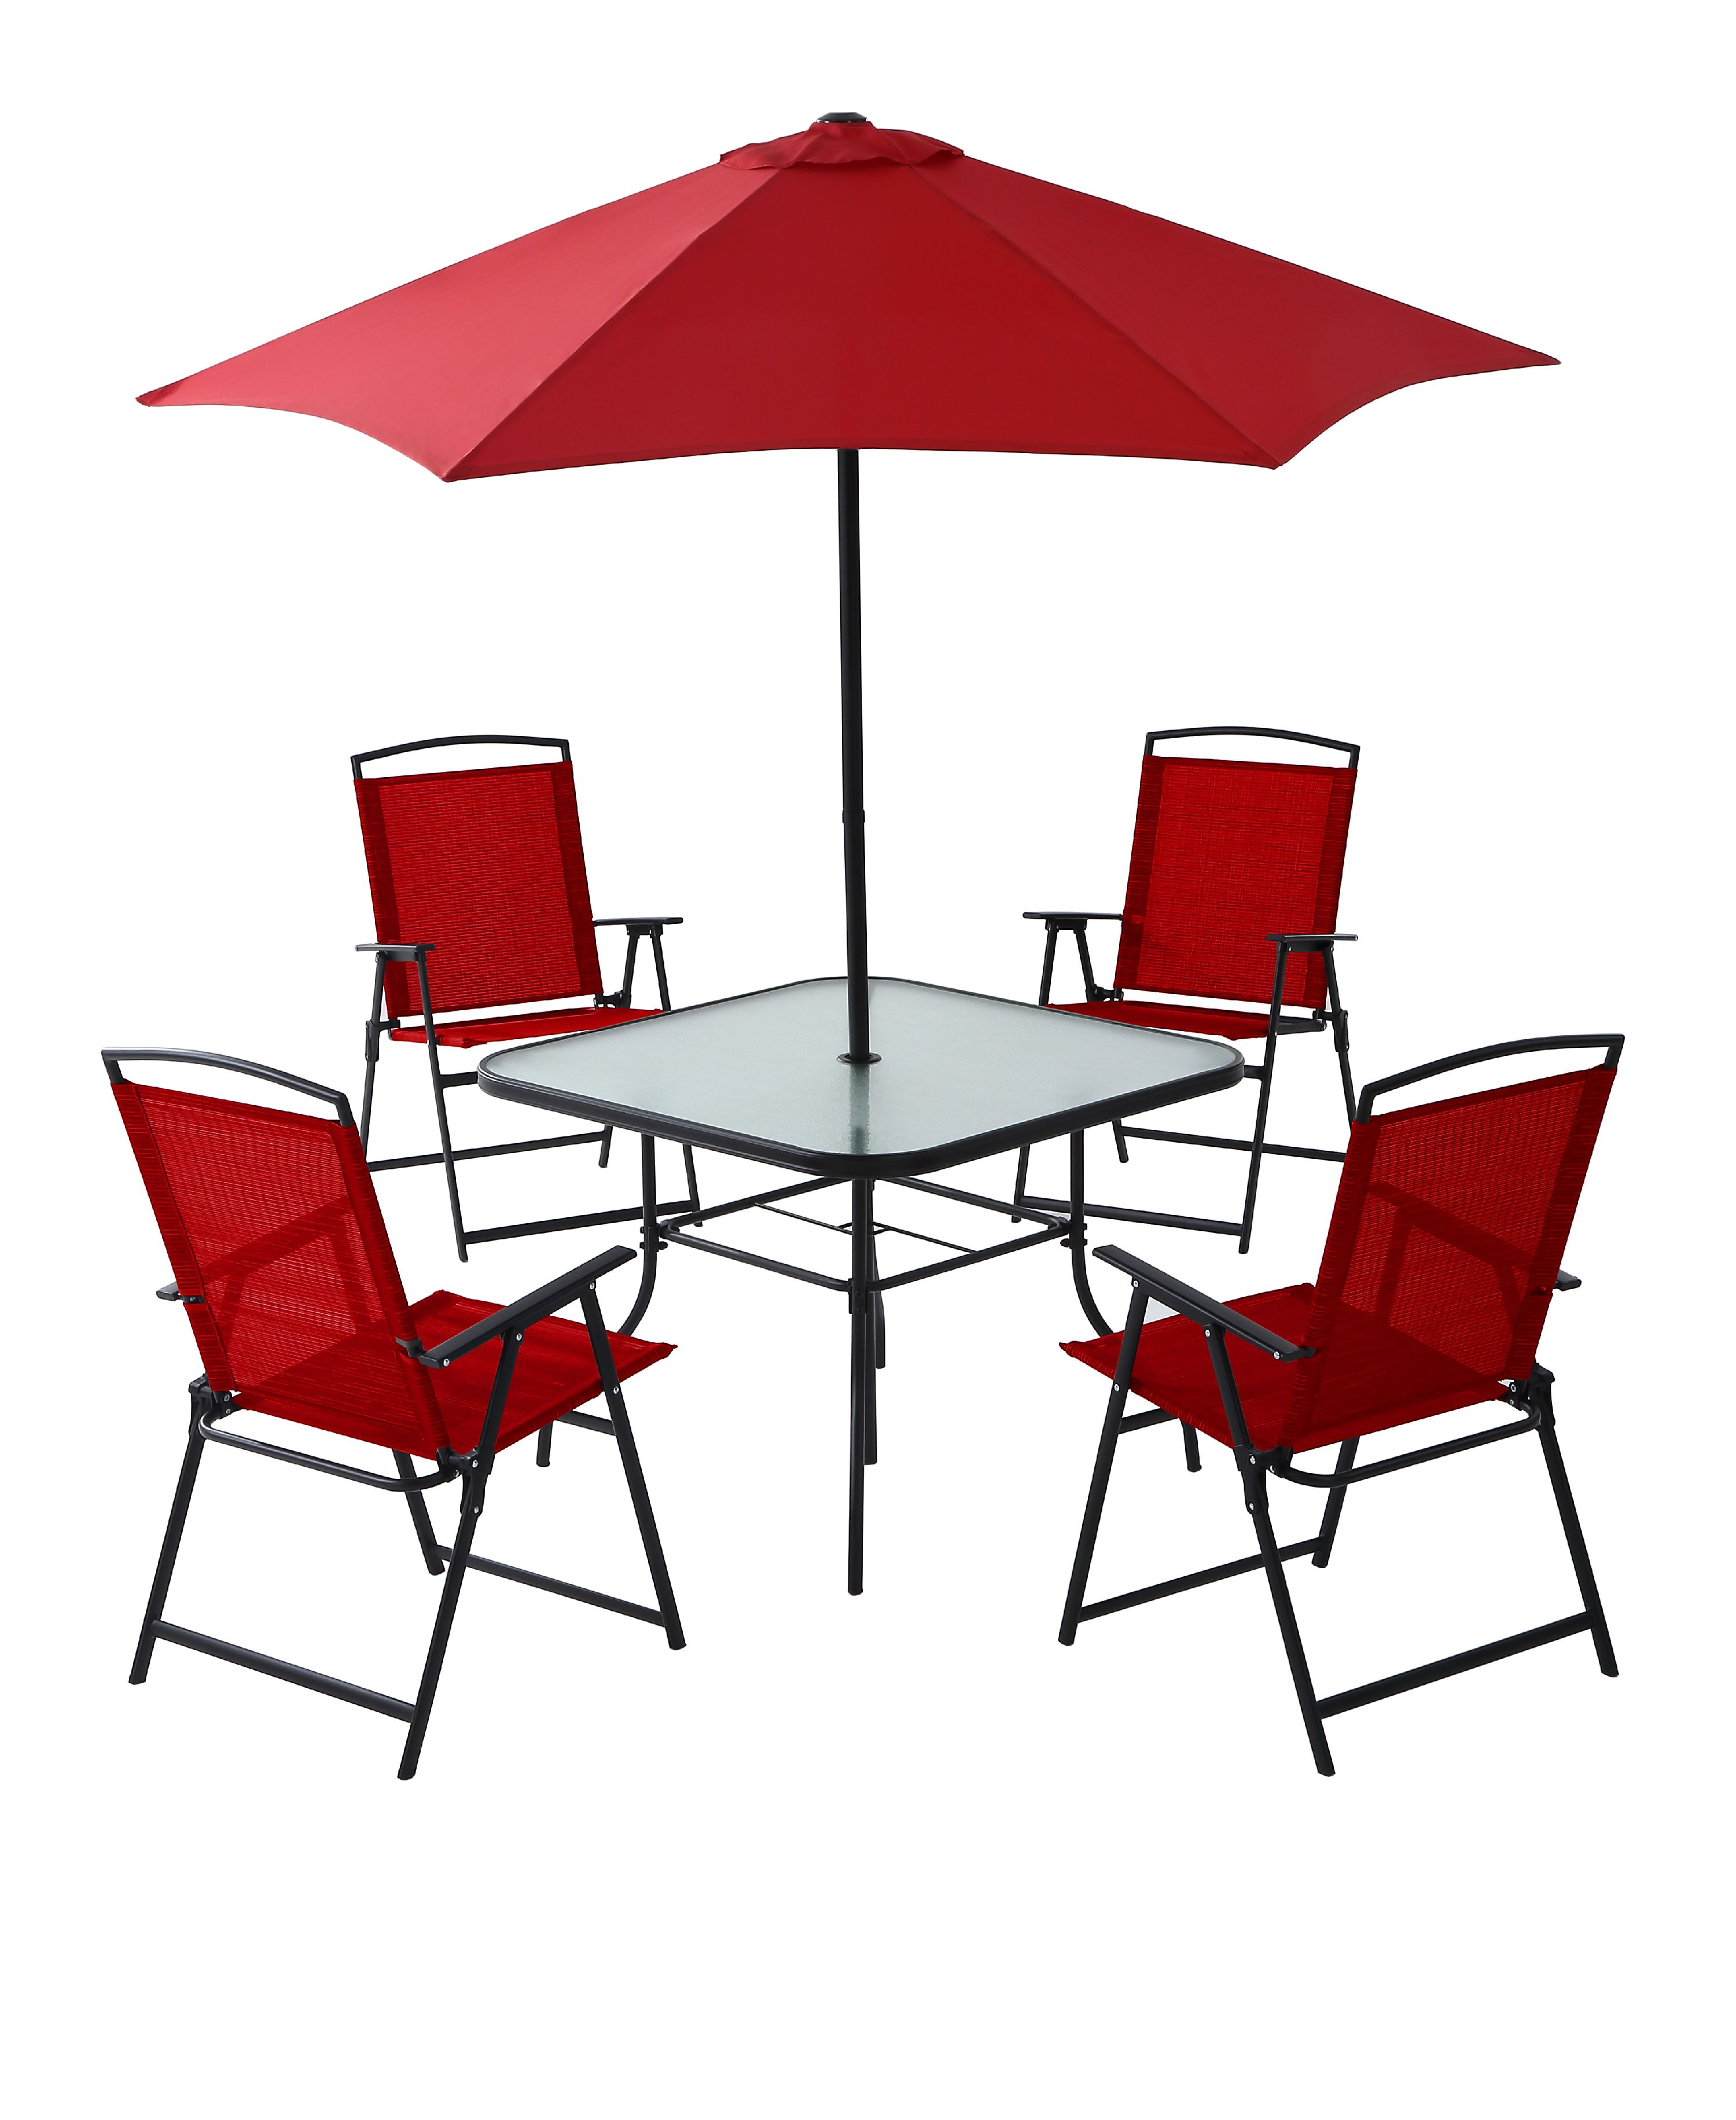 Sensational Mainstays Lakewood Heights Folding Patio Dining Set Multiple Colors Gmtry Best Dining Table And Chair Ideas Images Gmtryco